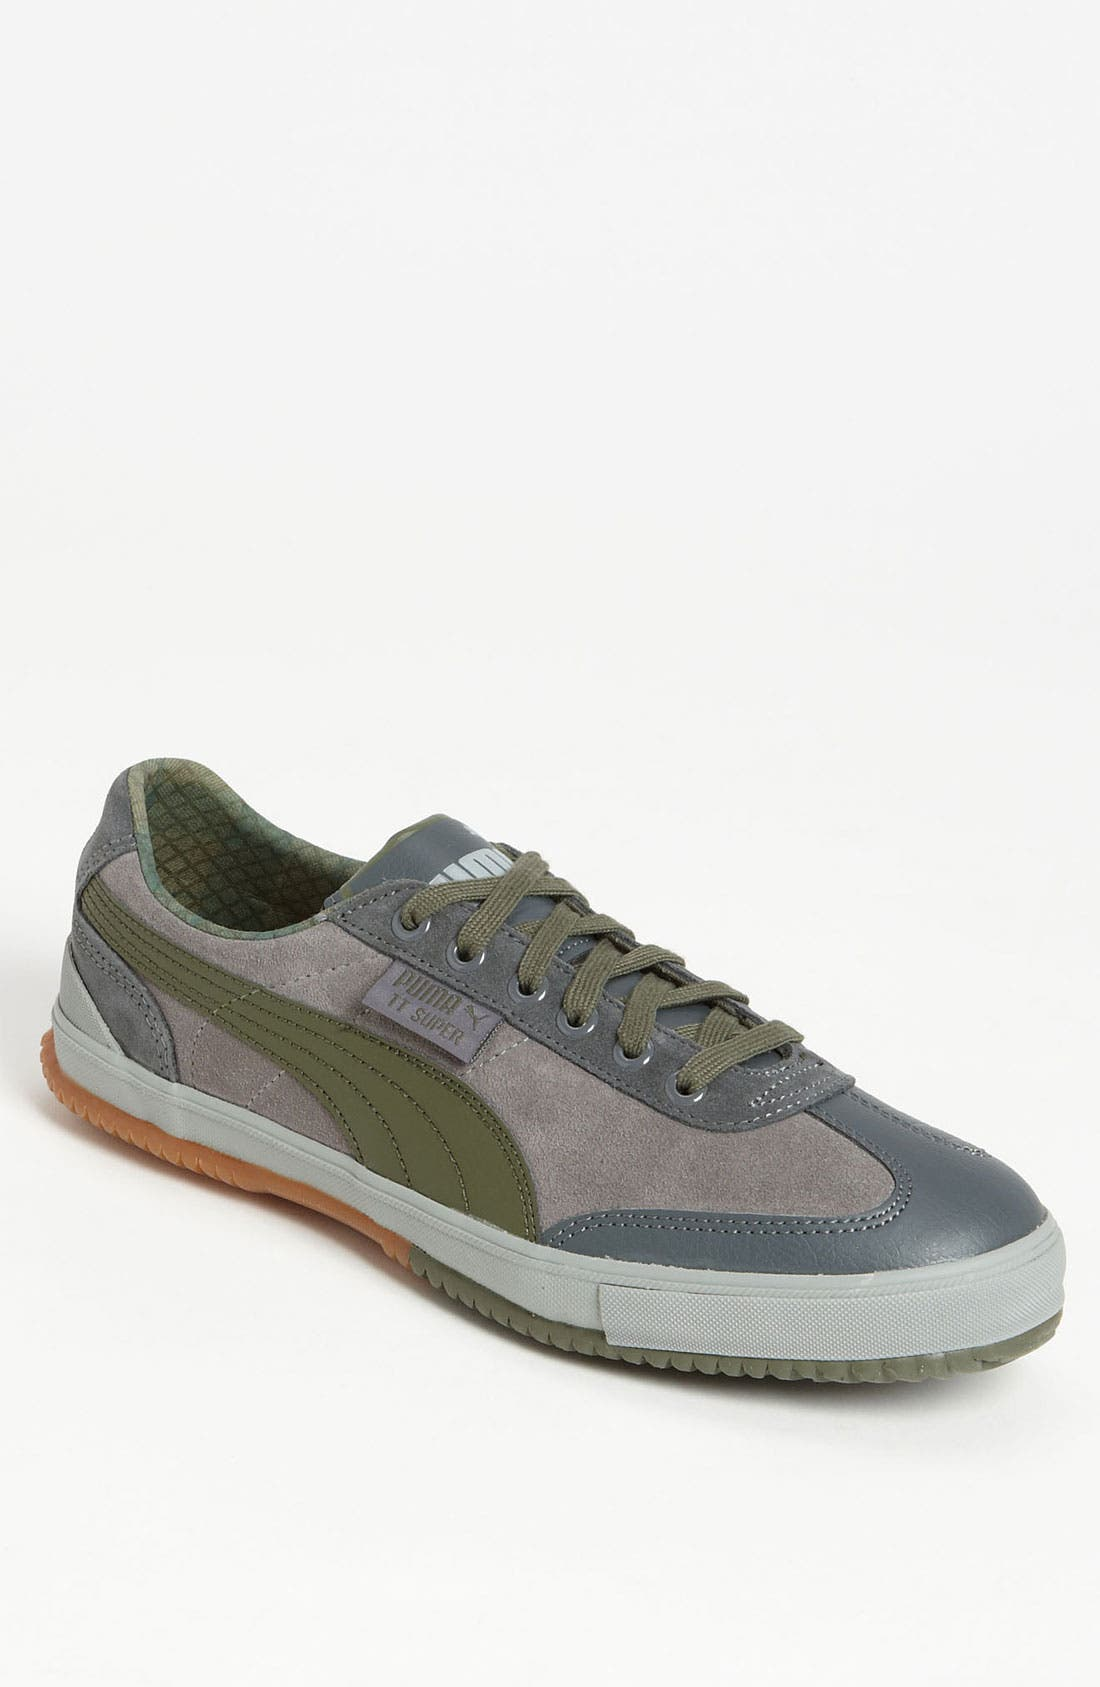 Main Image - PUMA 'TT Super LS' Sneaker (Men)